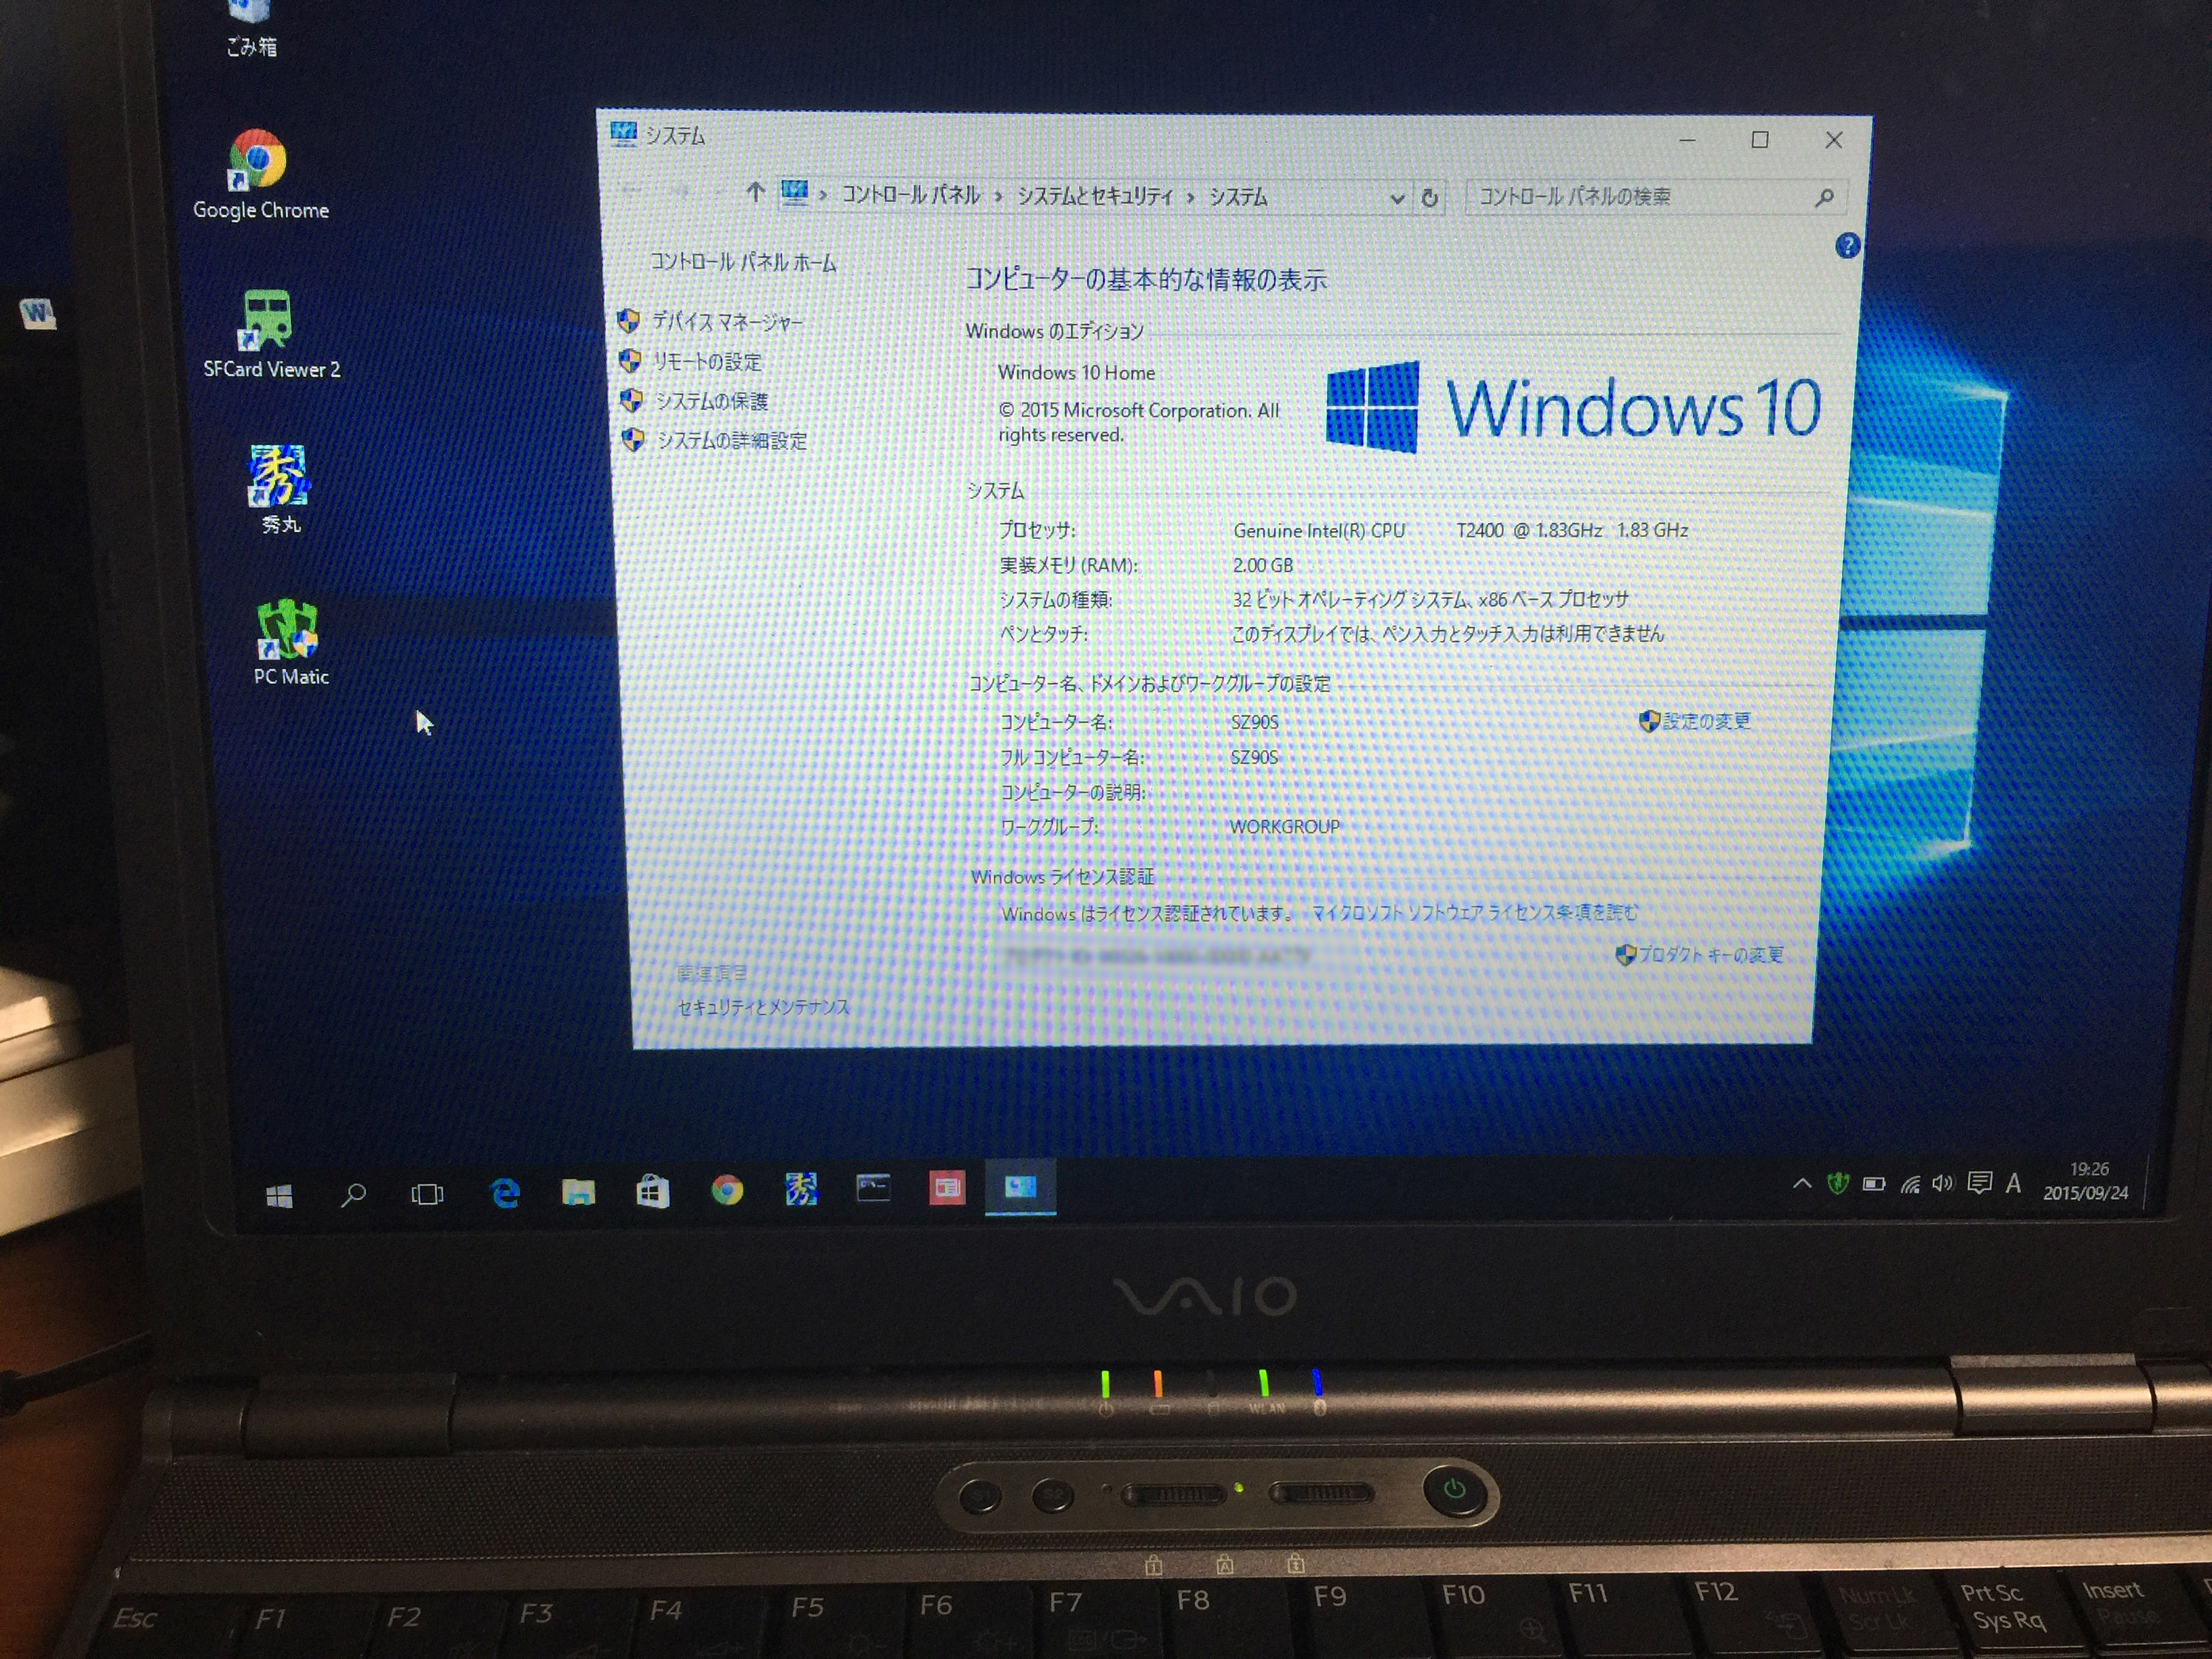 VAIO VGN-SZ90S Windows 10